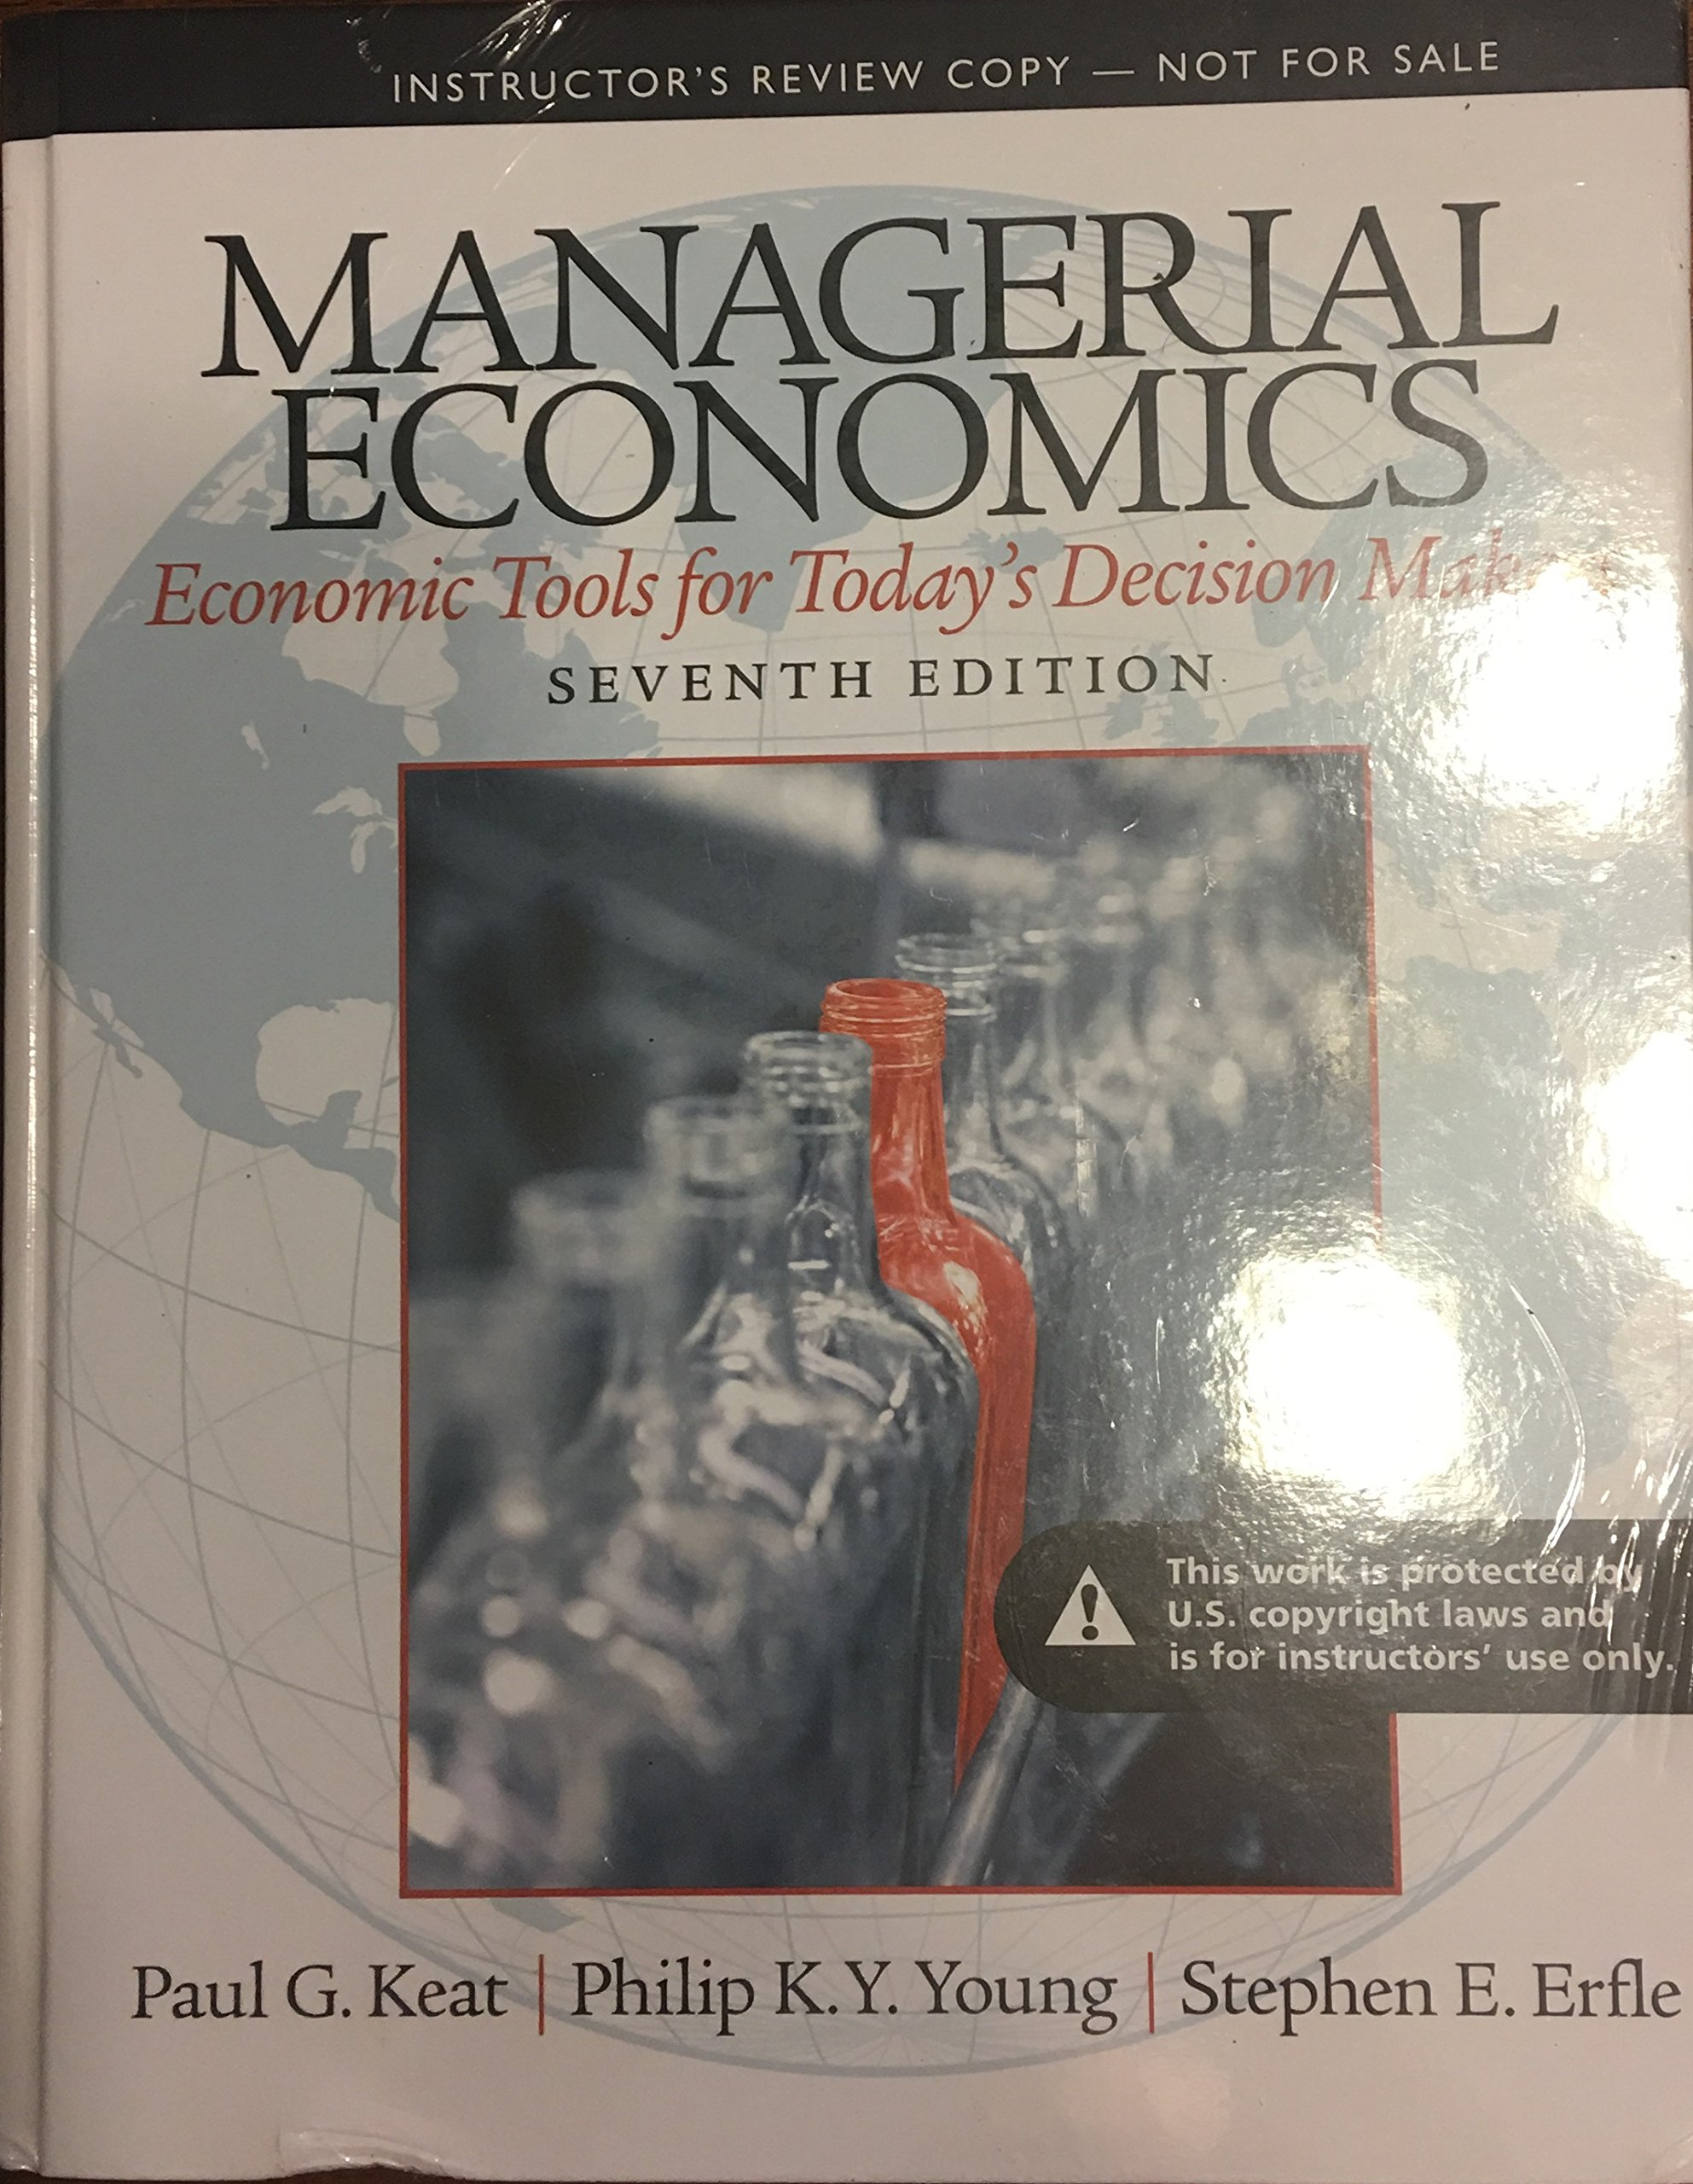 Managerial Economics (7th Edition): Economic Tools for Today's Decision  Makers Instructor's Review Copy: Paul G. Keat, Philip K. Y. Young, Stephen  E. Erfle: ...